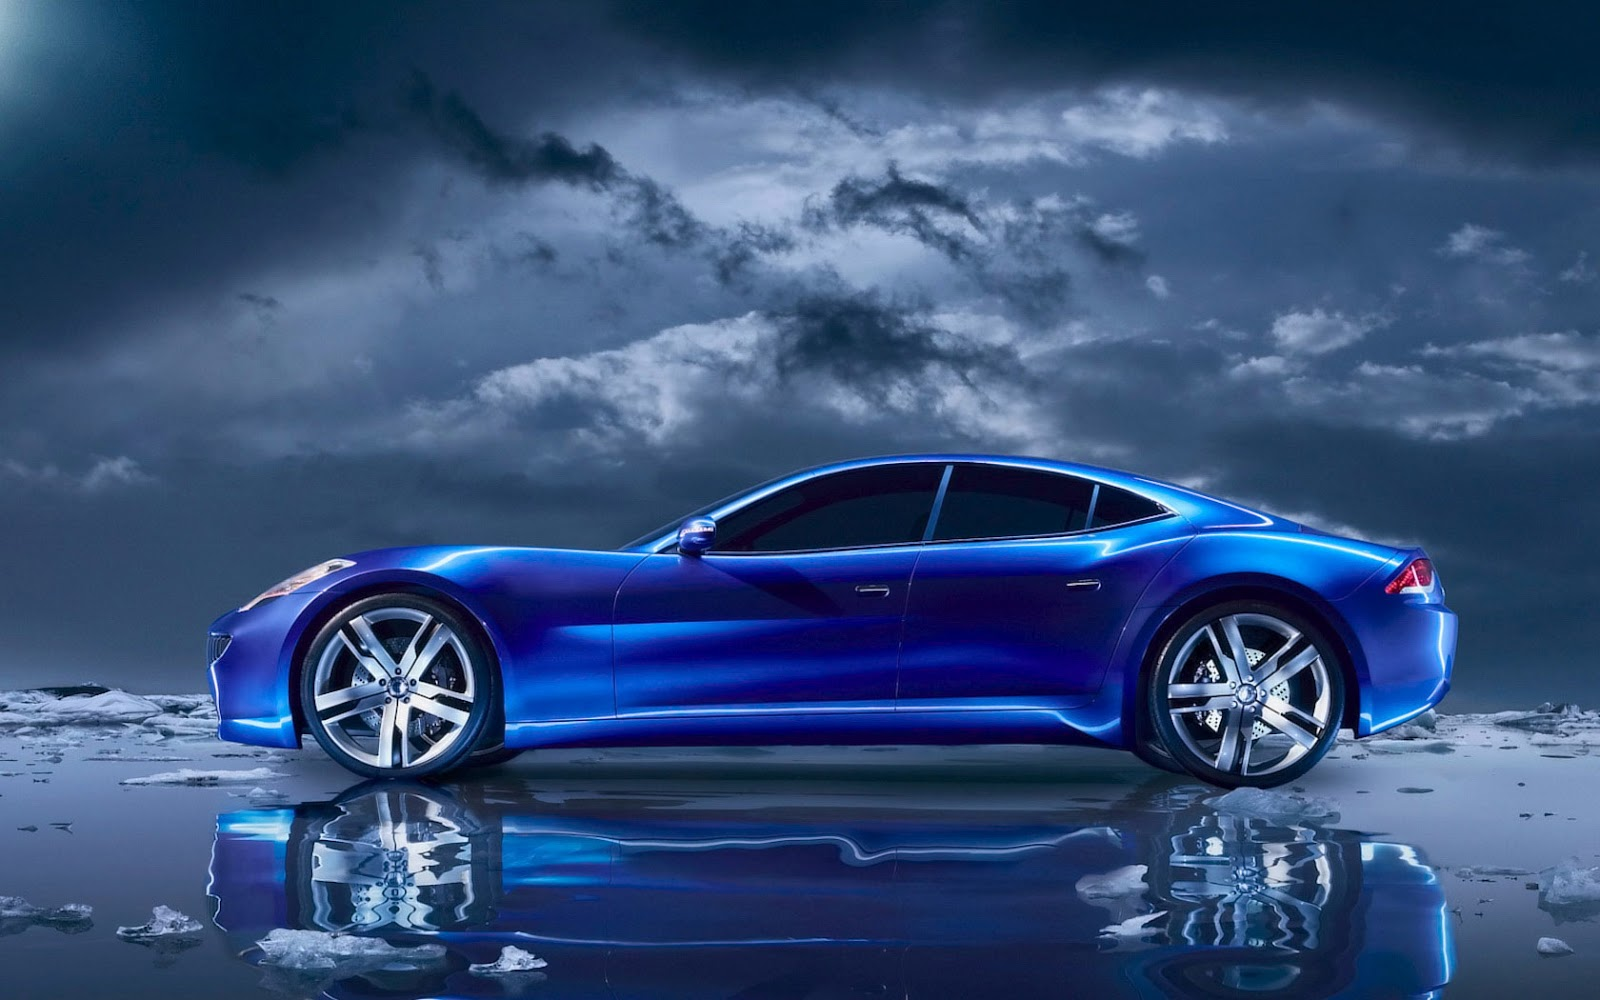 cars cars wallpapers cool cars fast car hot cars racing cars sports 1600x1000